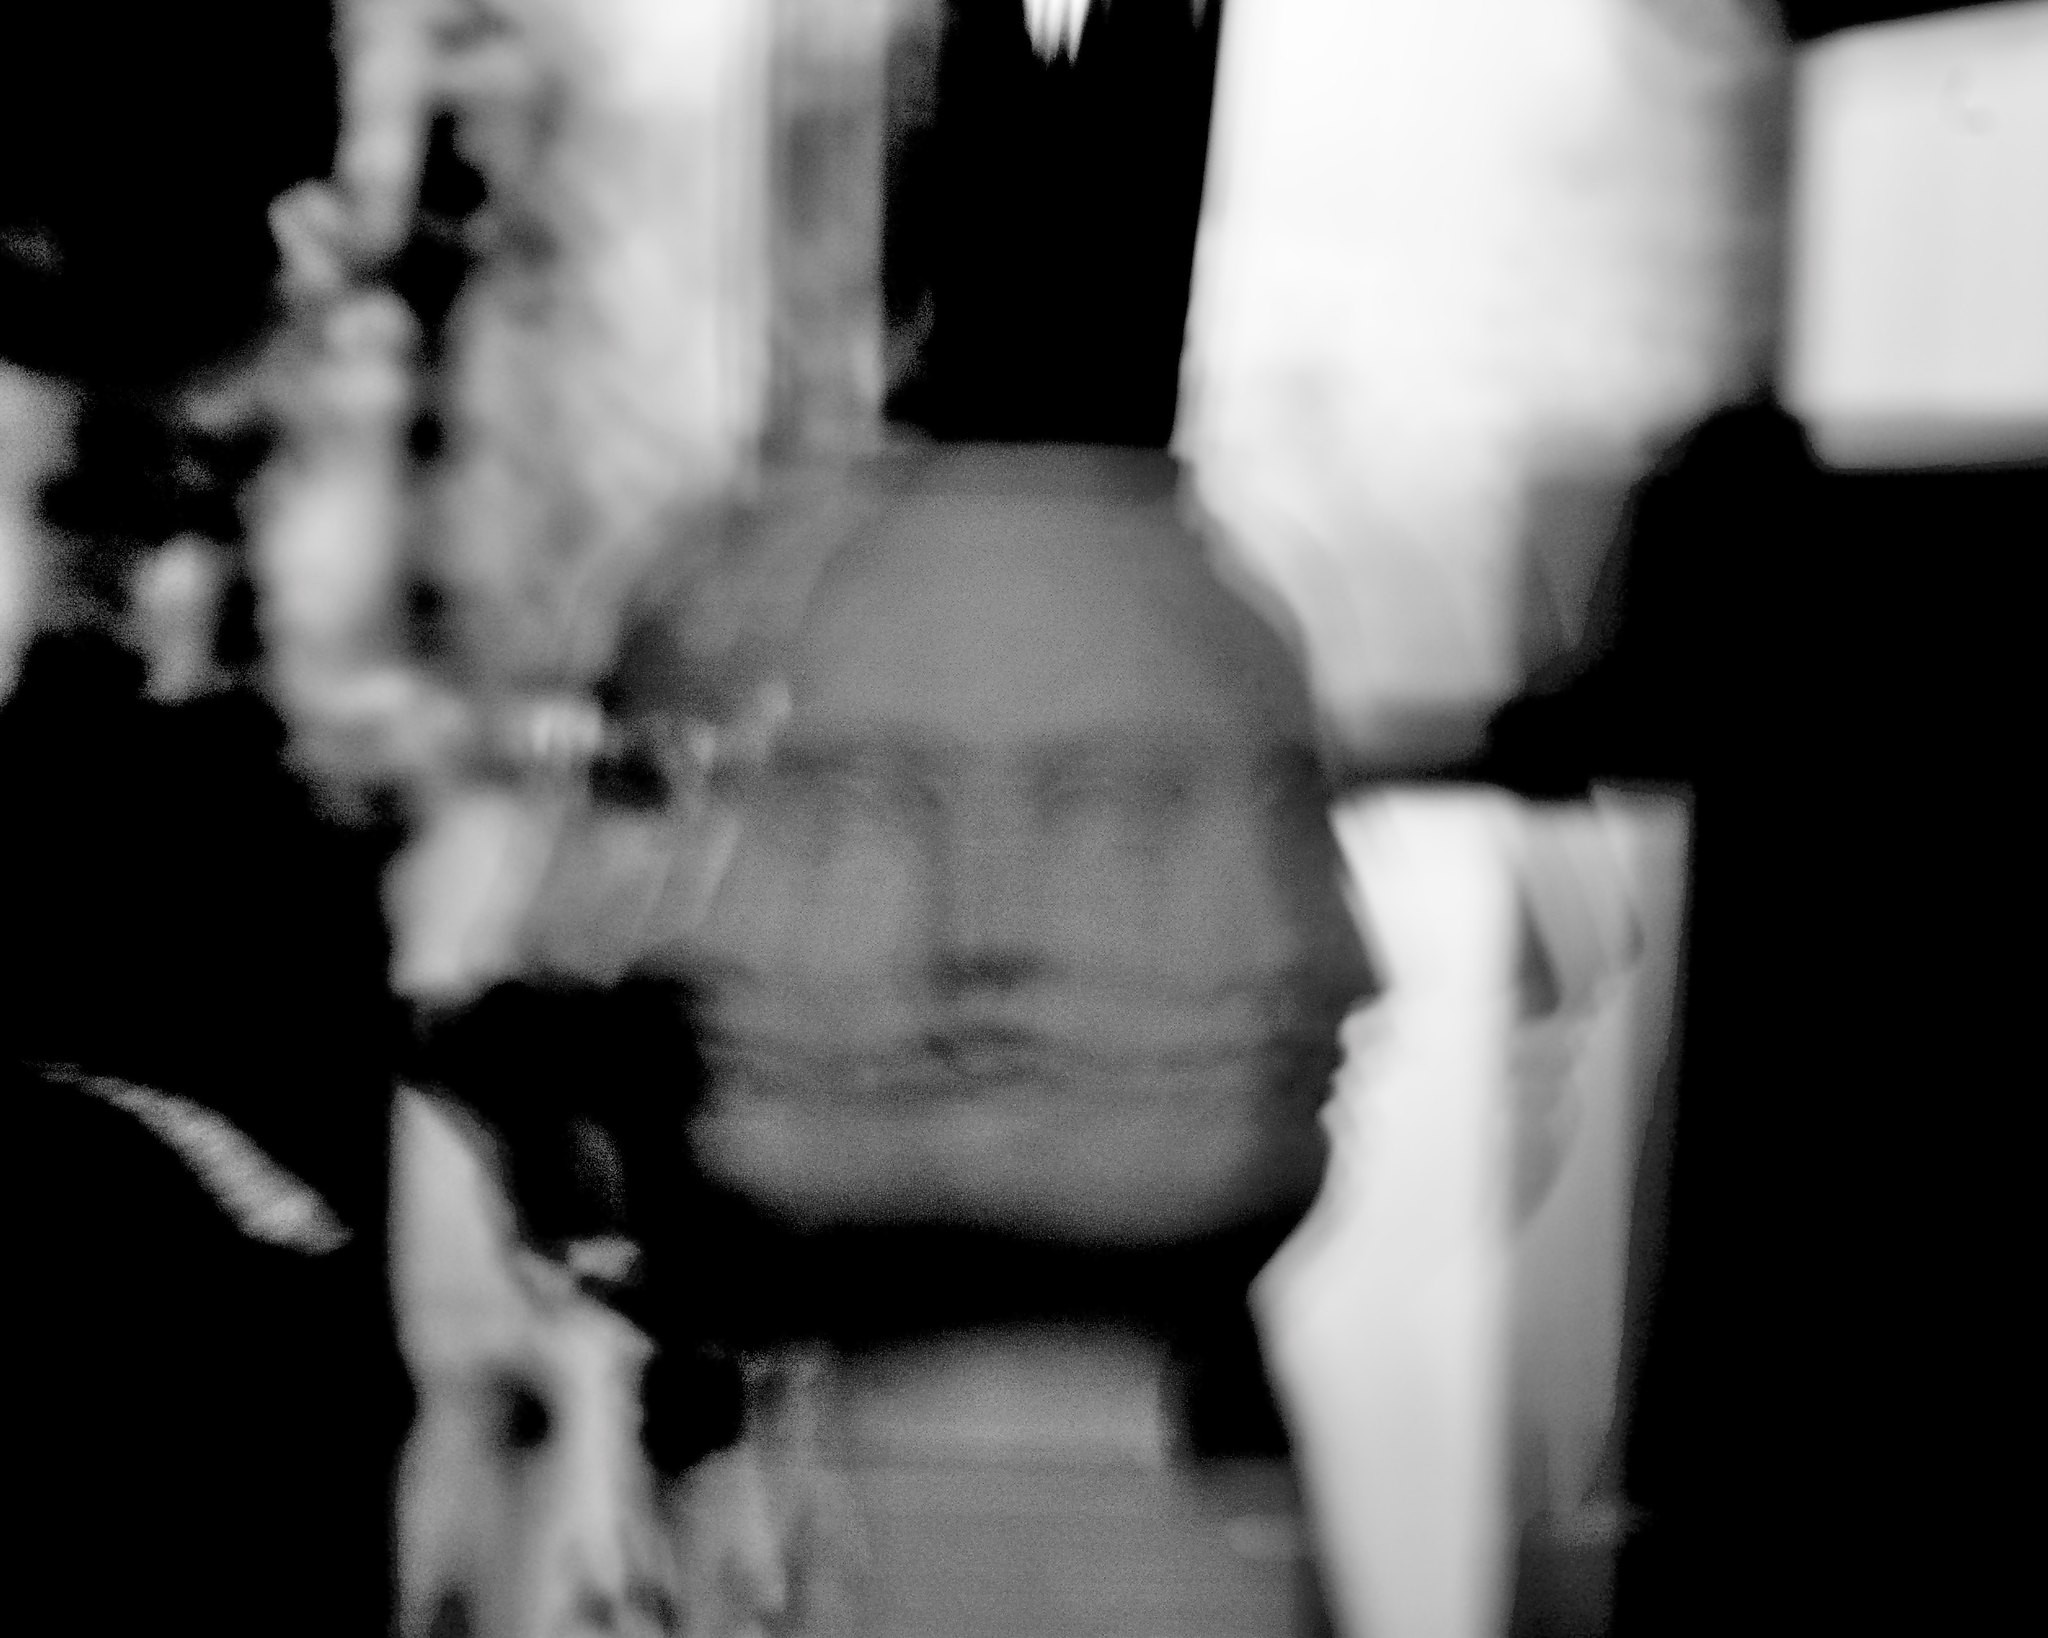 Black and white superimposed image of a sculpture of a face.